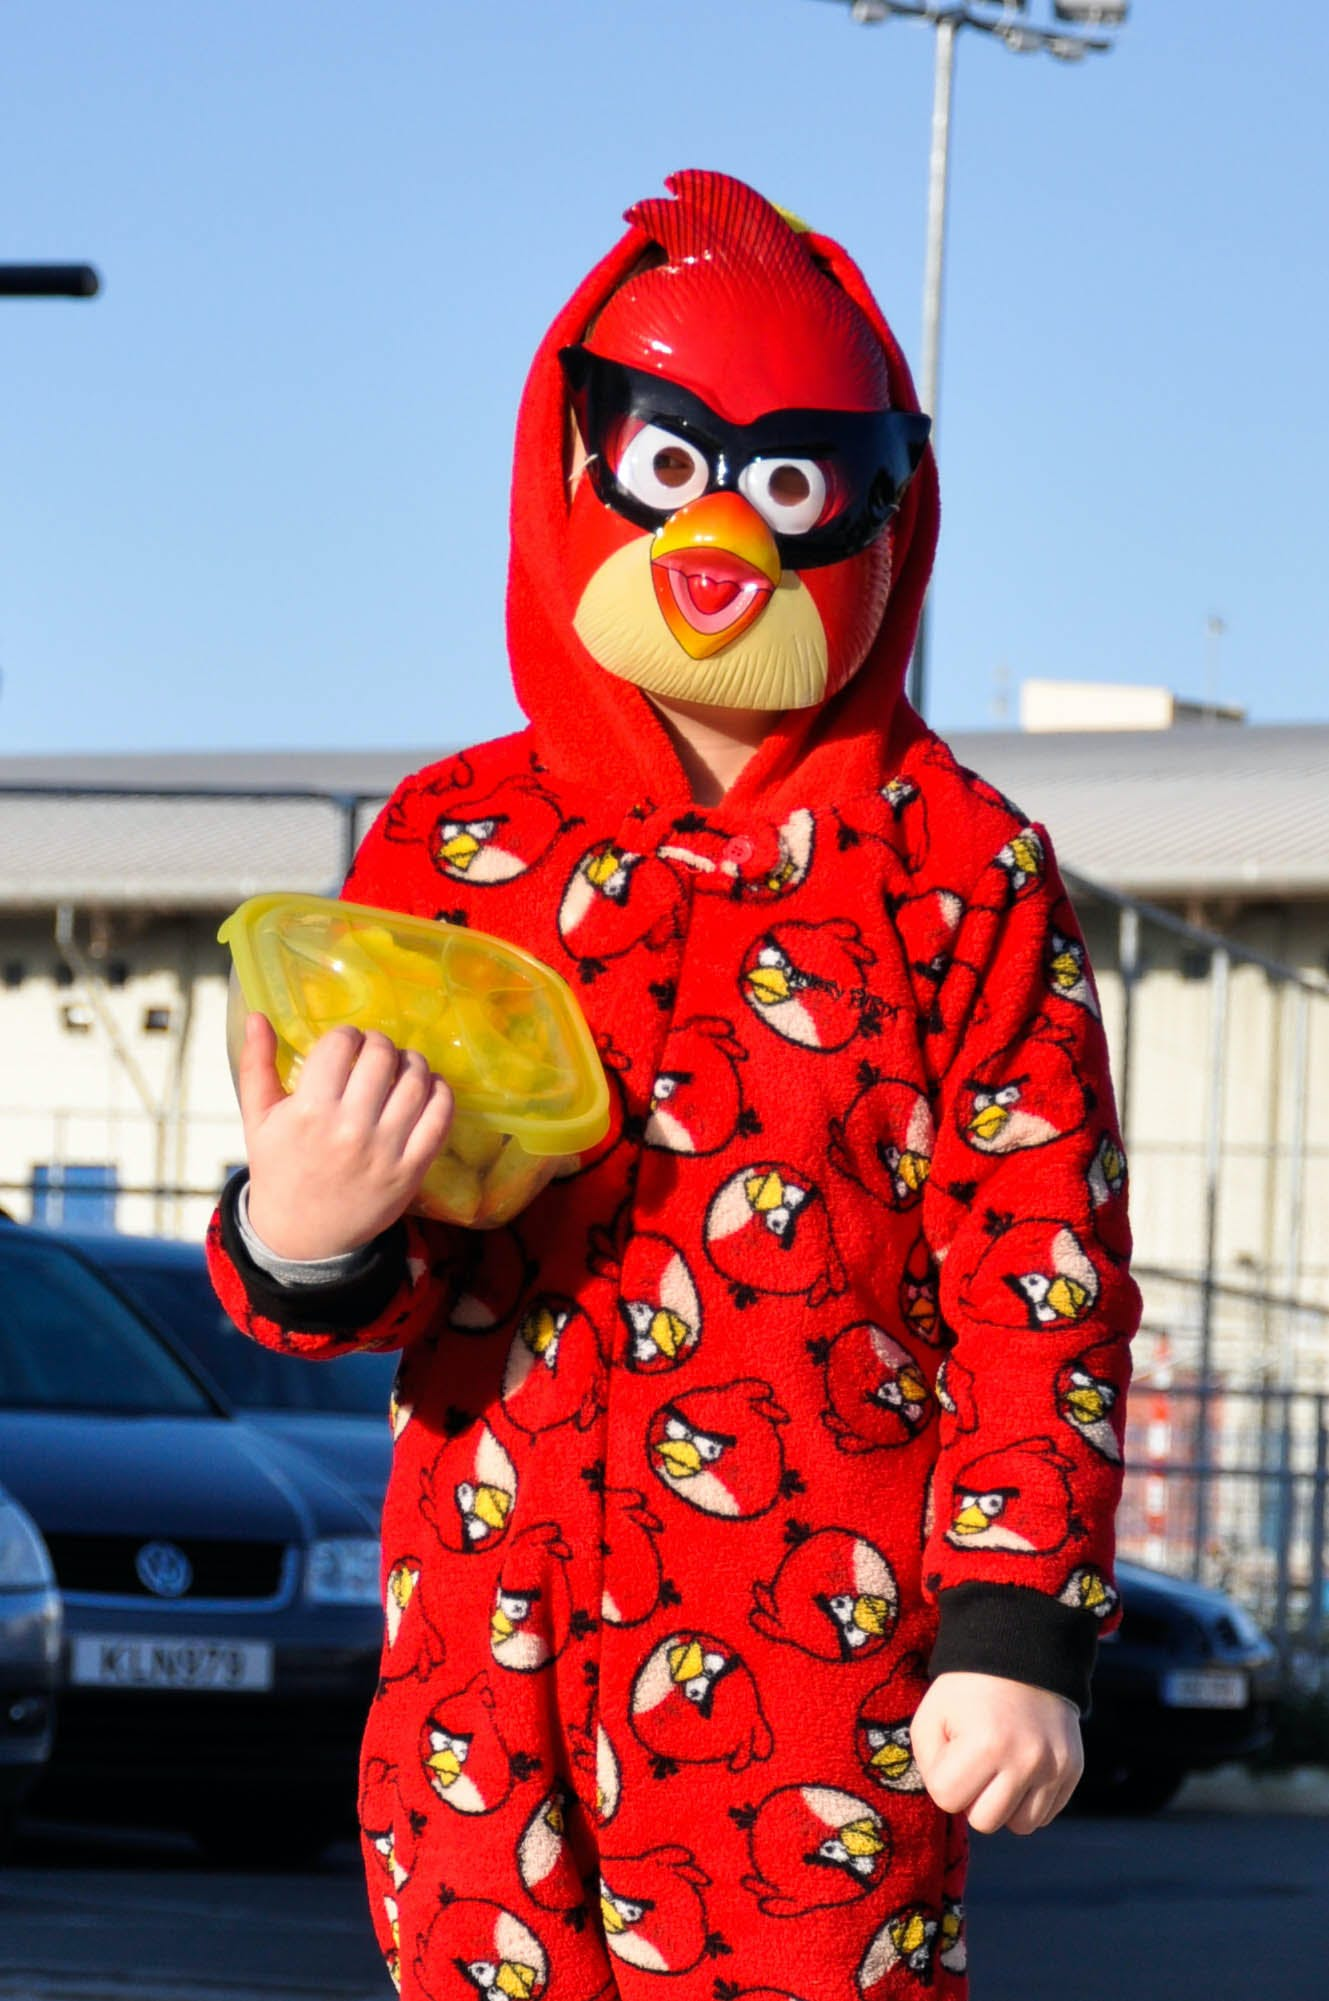 Free stock photo of angry bird, carnaval, costume, kid